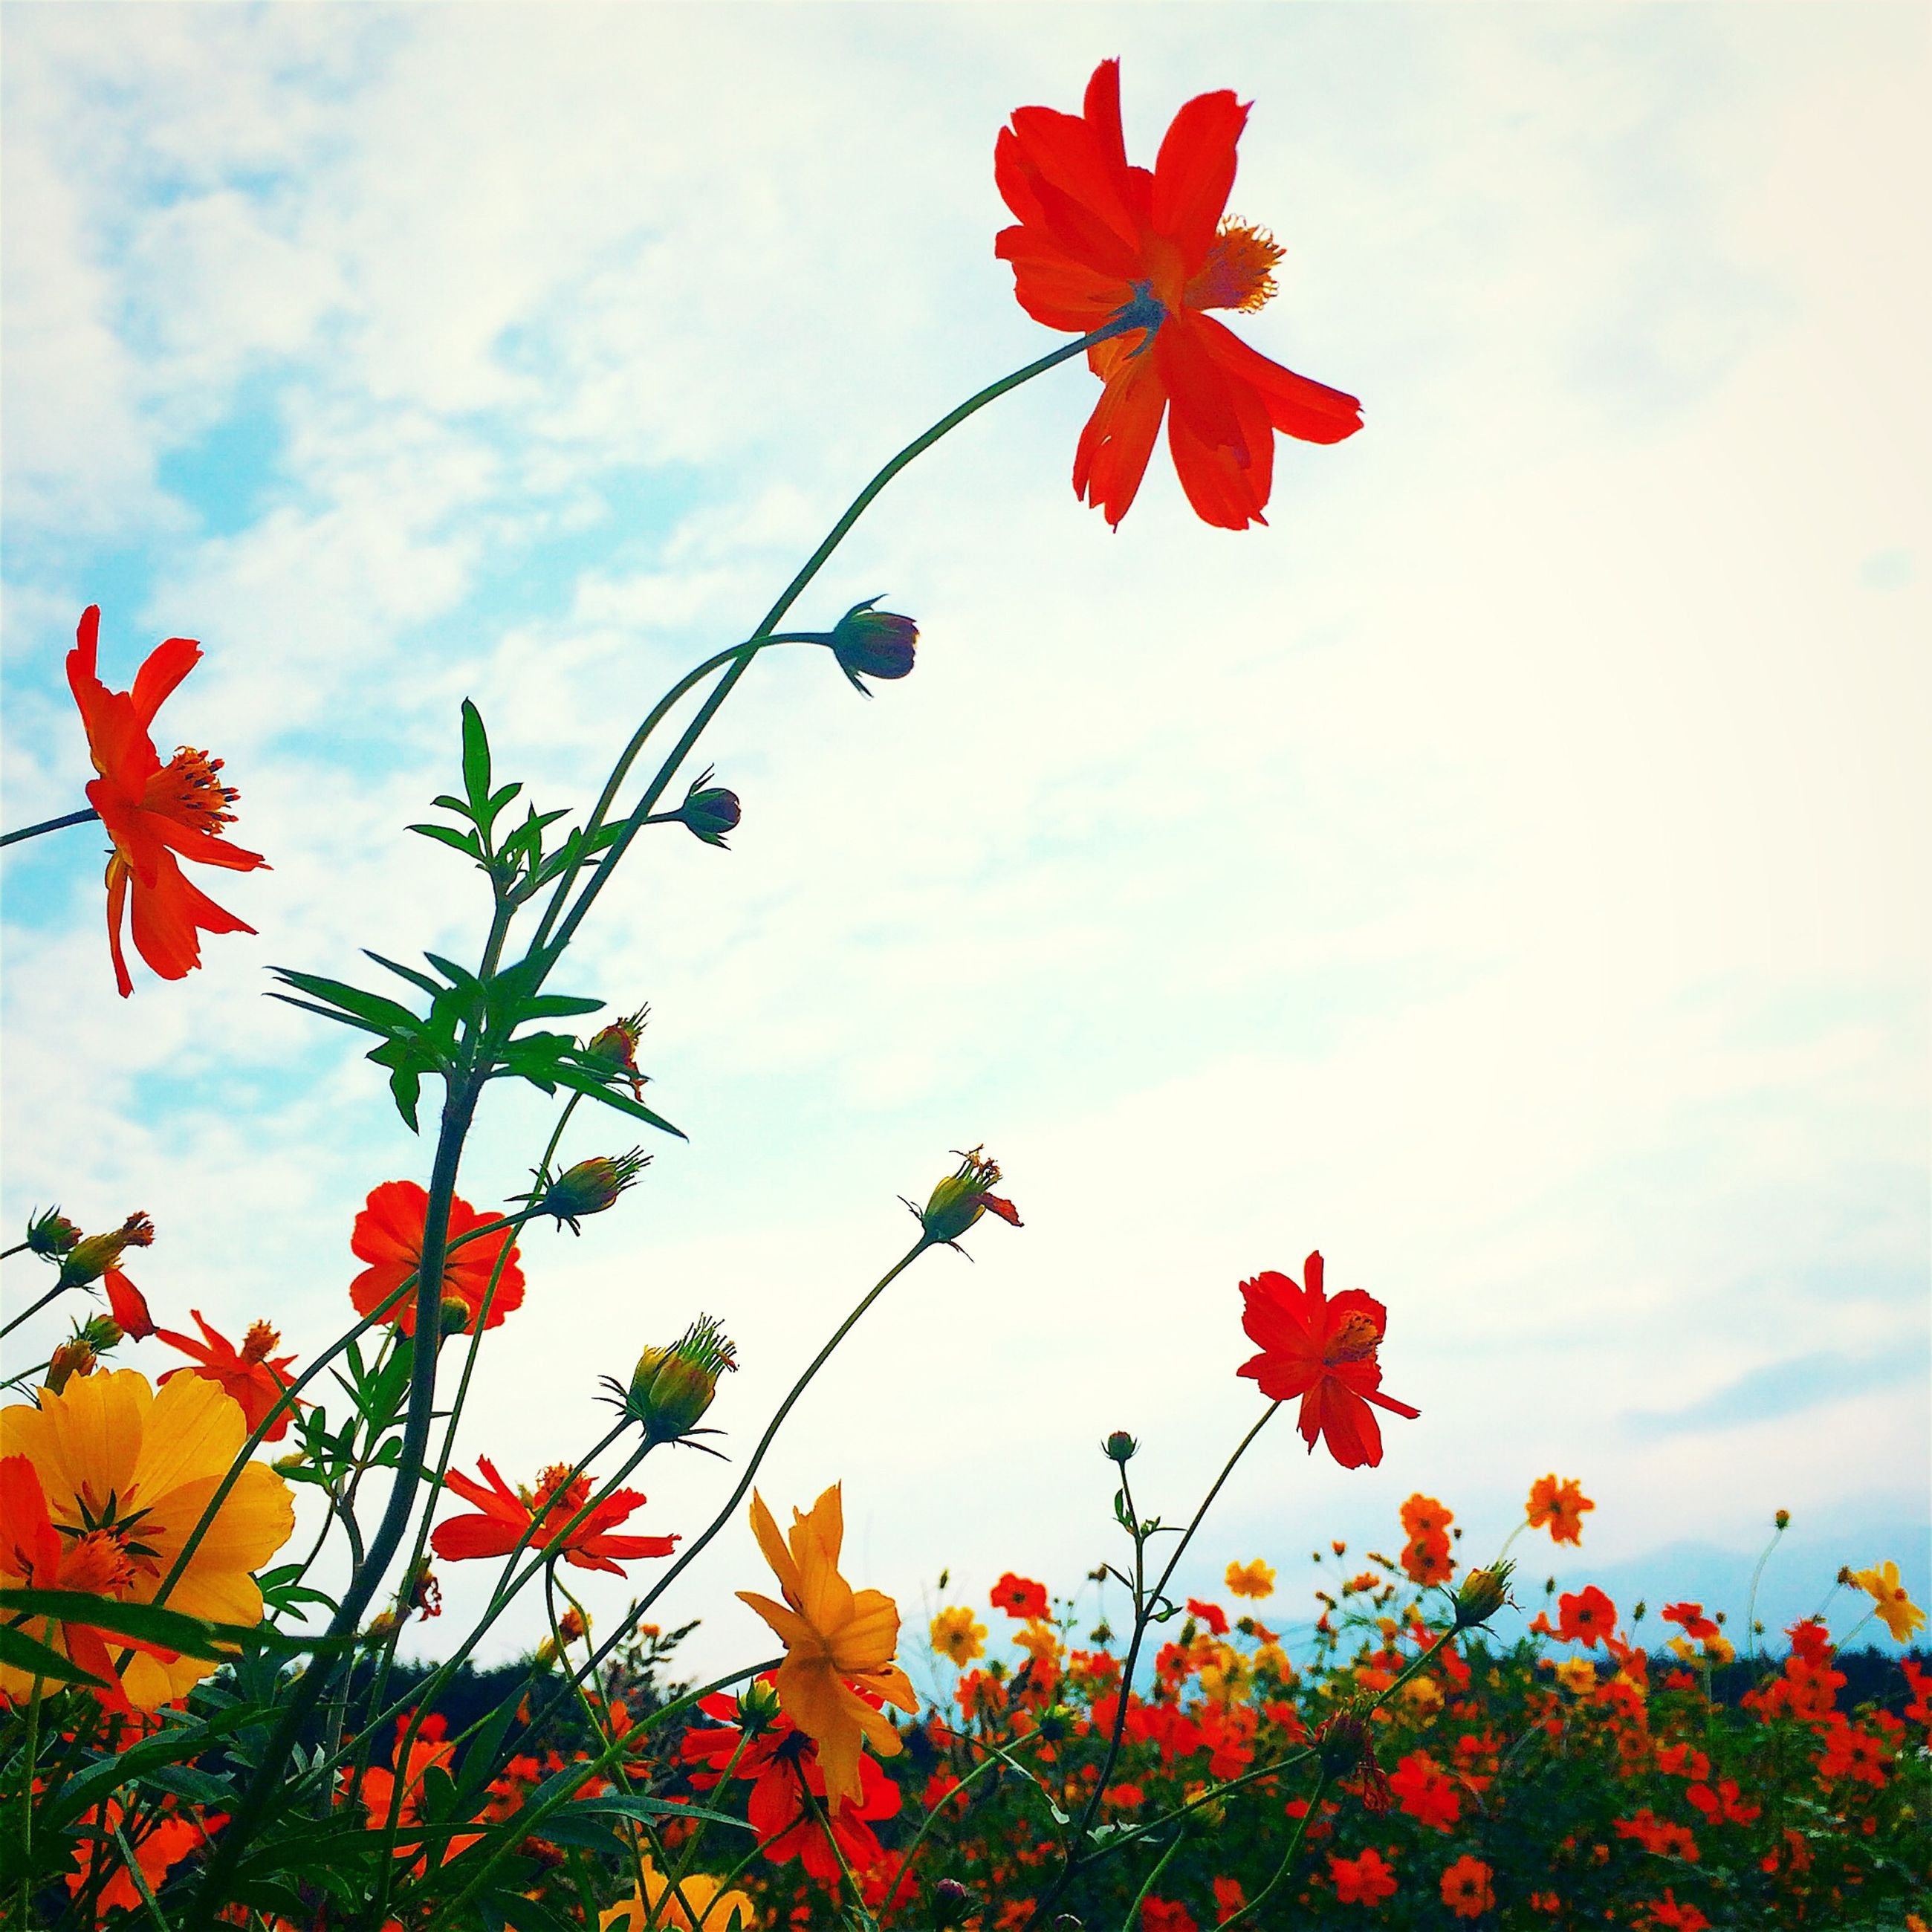 flower, red, freshness, sky, low angle view, growth, fragility, beauty in nature, cloud - sky, petal, nature, cloud, blooming, blossom, in bloom, cloudy, plant, springtime, day, outdoors